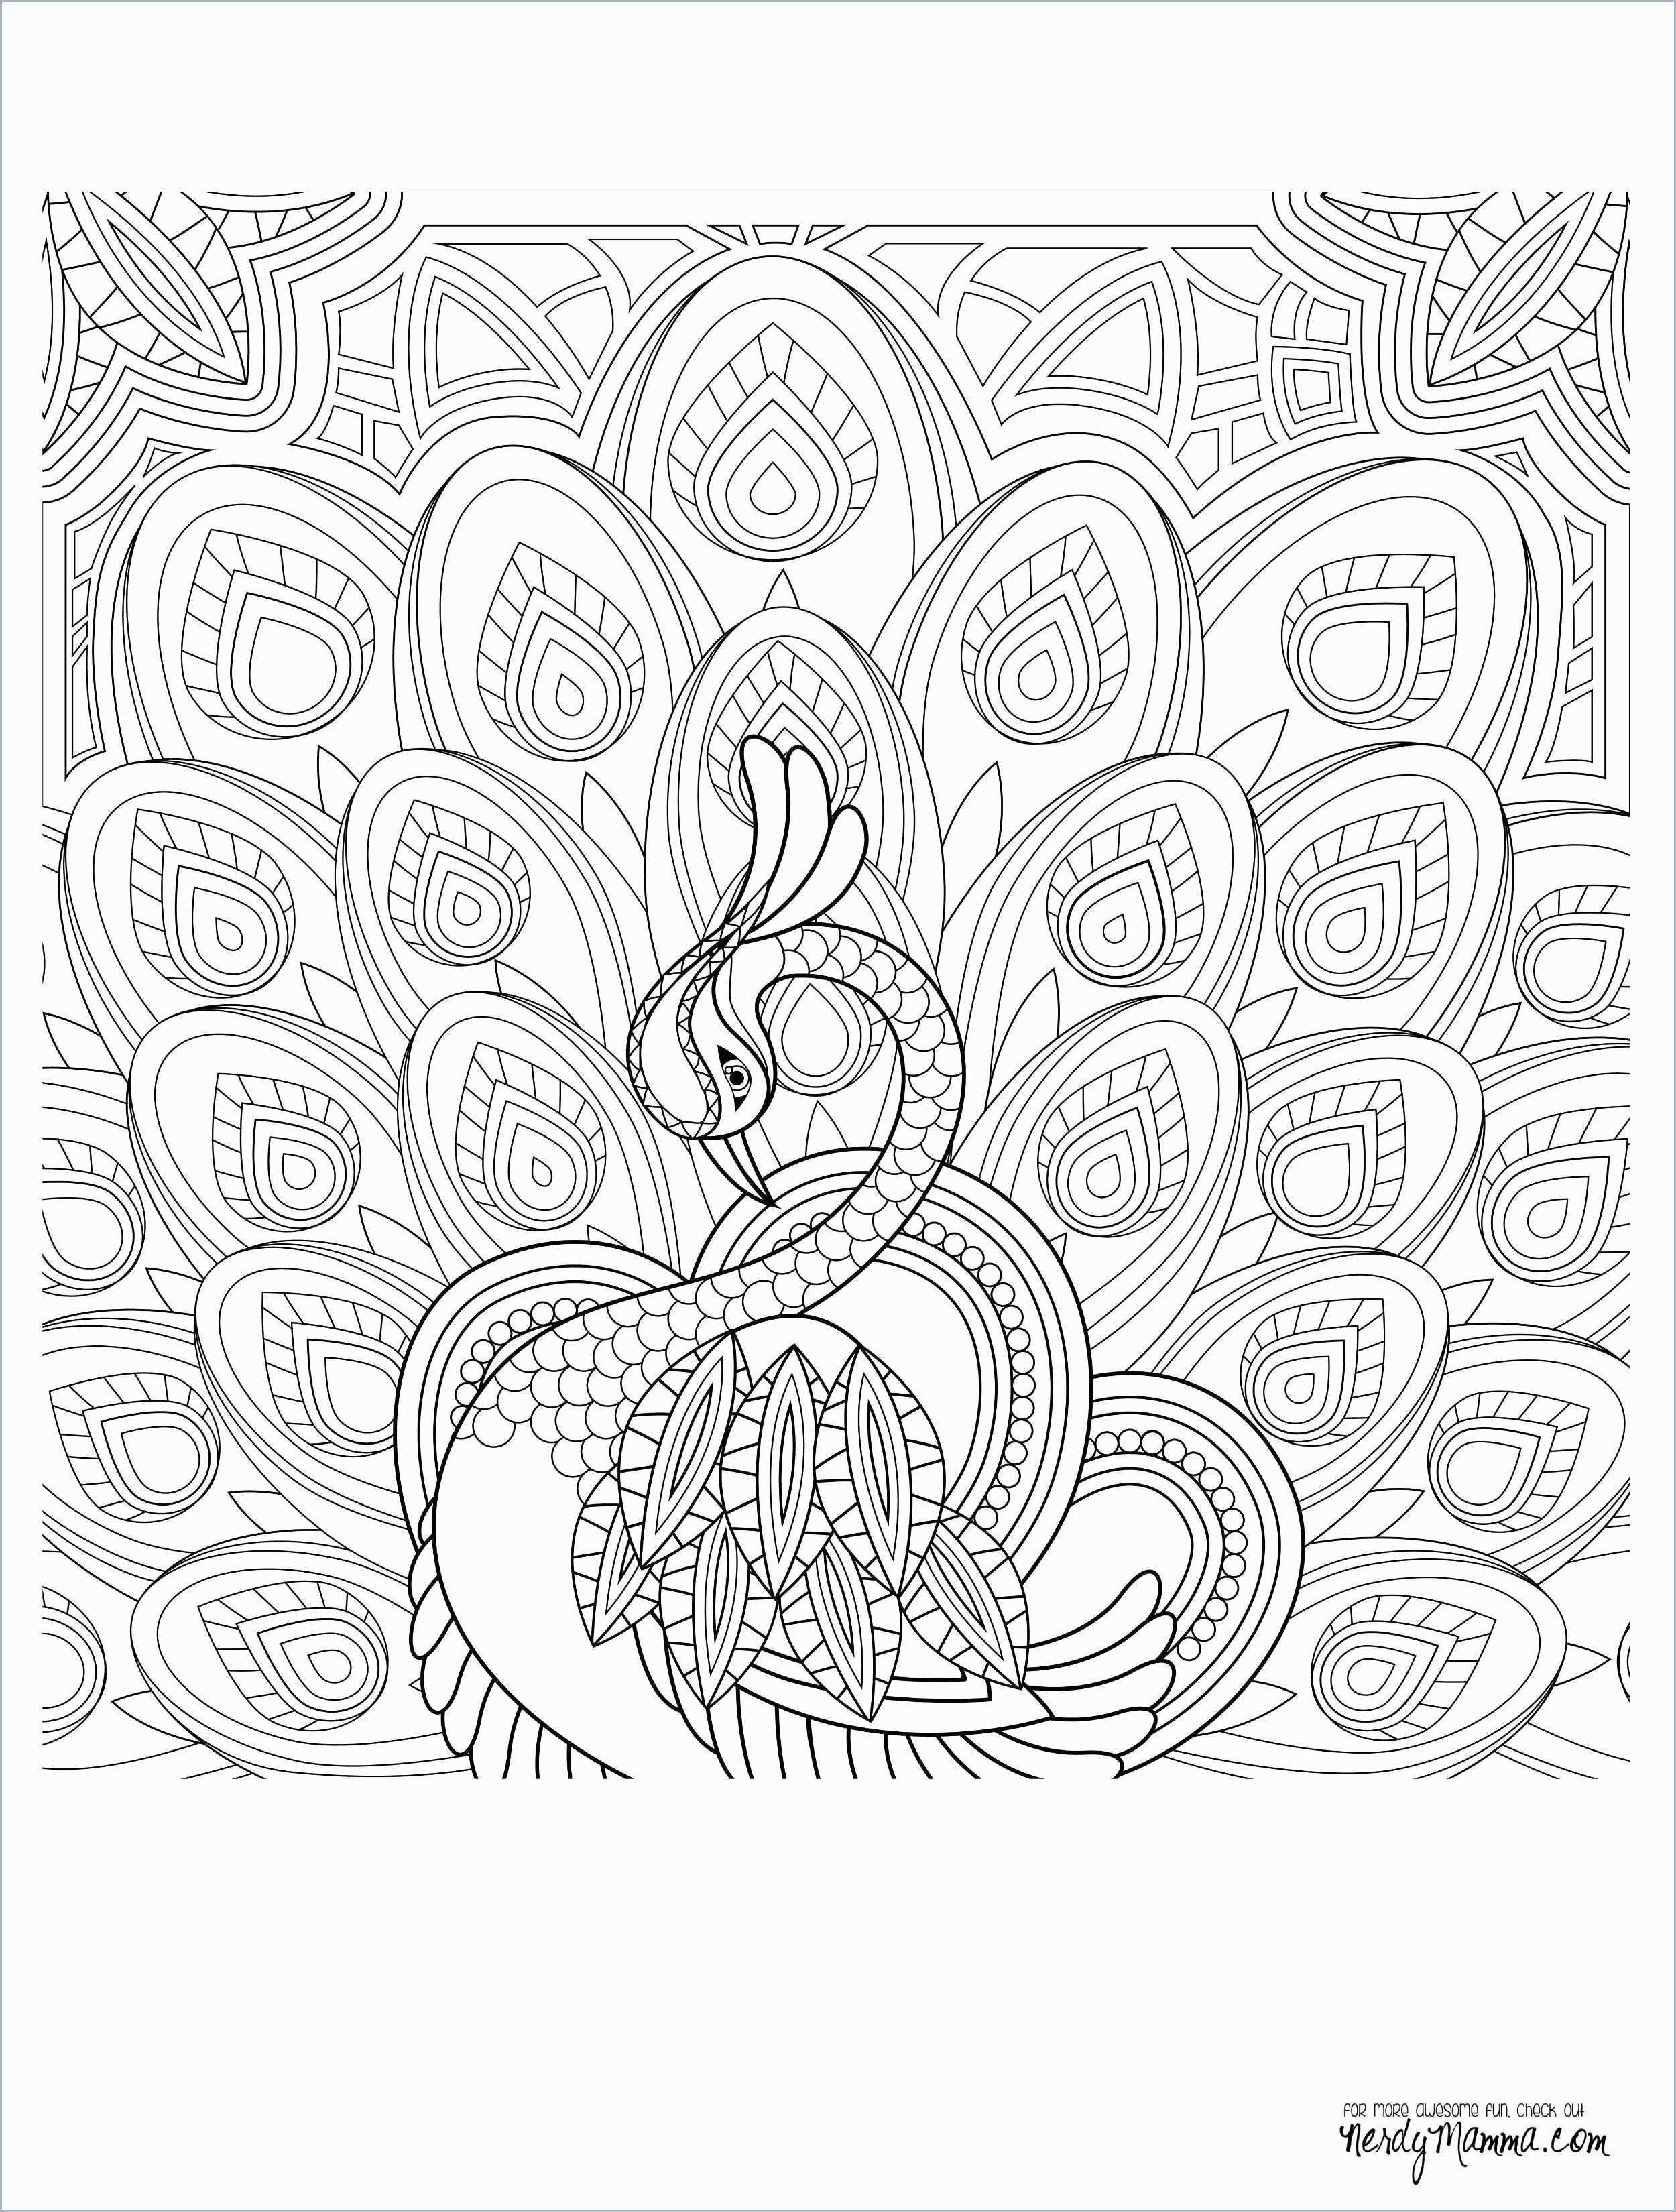 Pokemon Coloring Book Walmart Coloring Pages Allow Kids To Accompany Their Favorite Characte Love Coloring Pages Heart Coloring Pages Mandala Coloring Pages